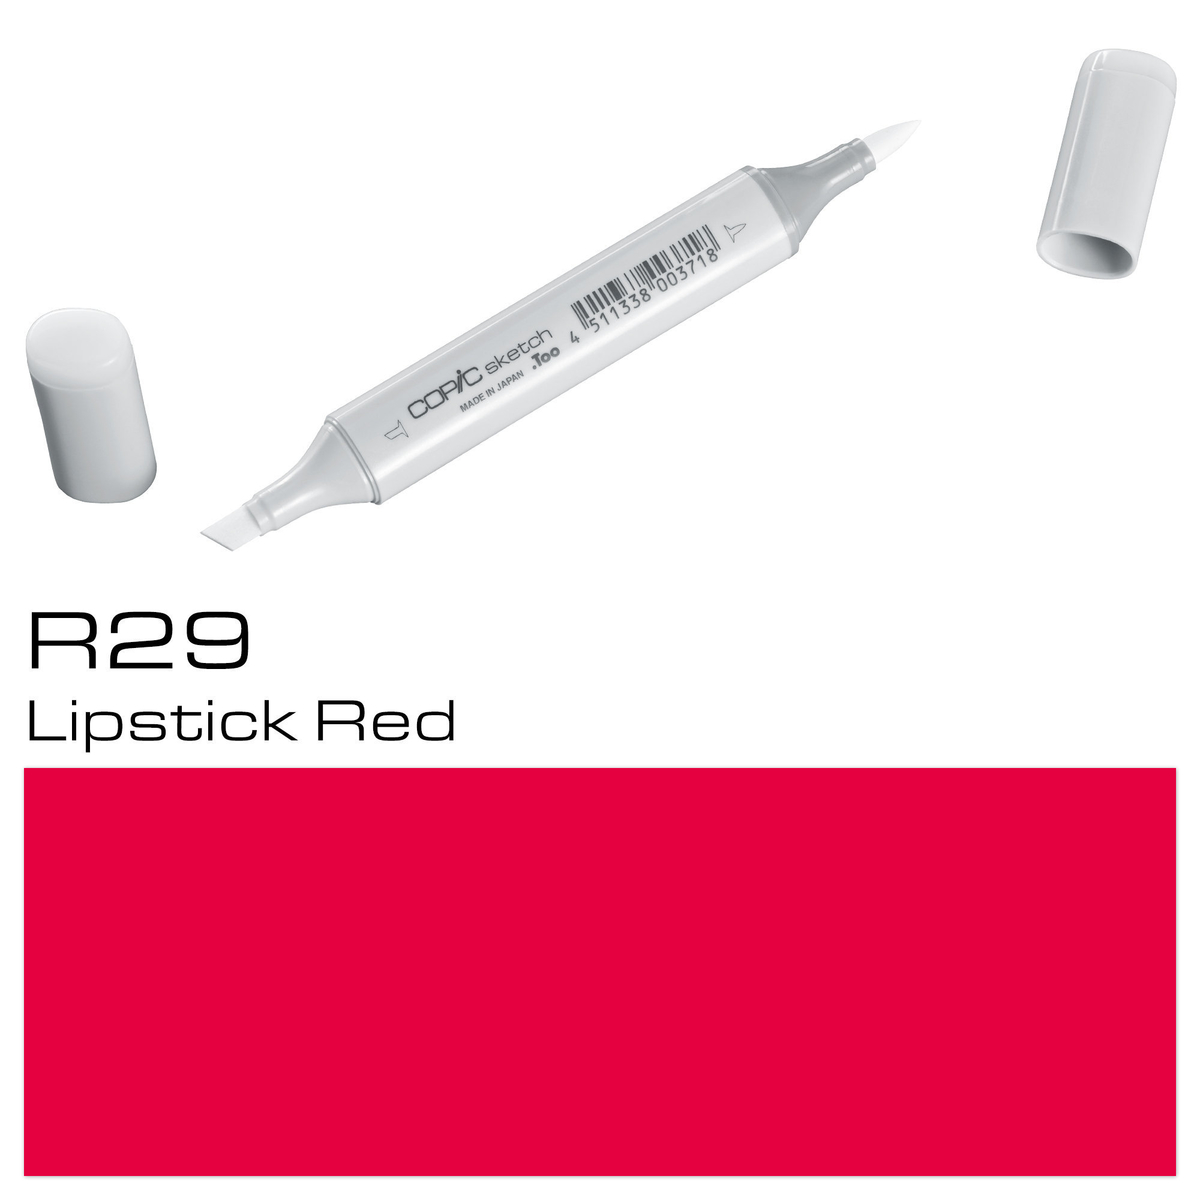 Copic Sketch R 29 lipstick red